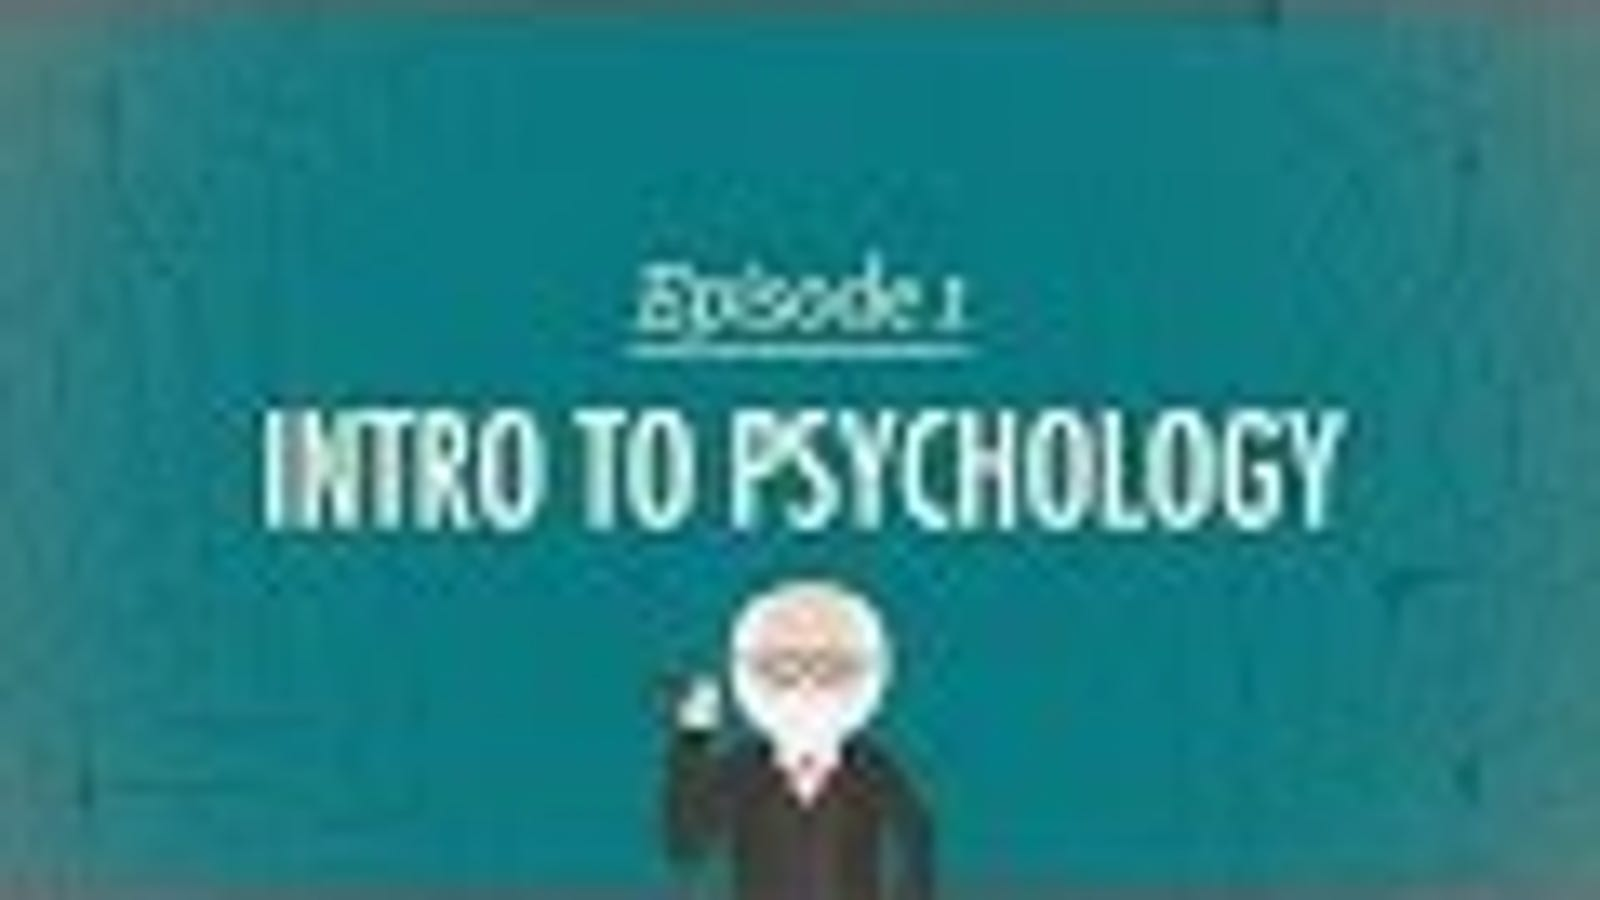 A Crash Course in Psychology